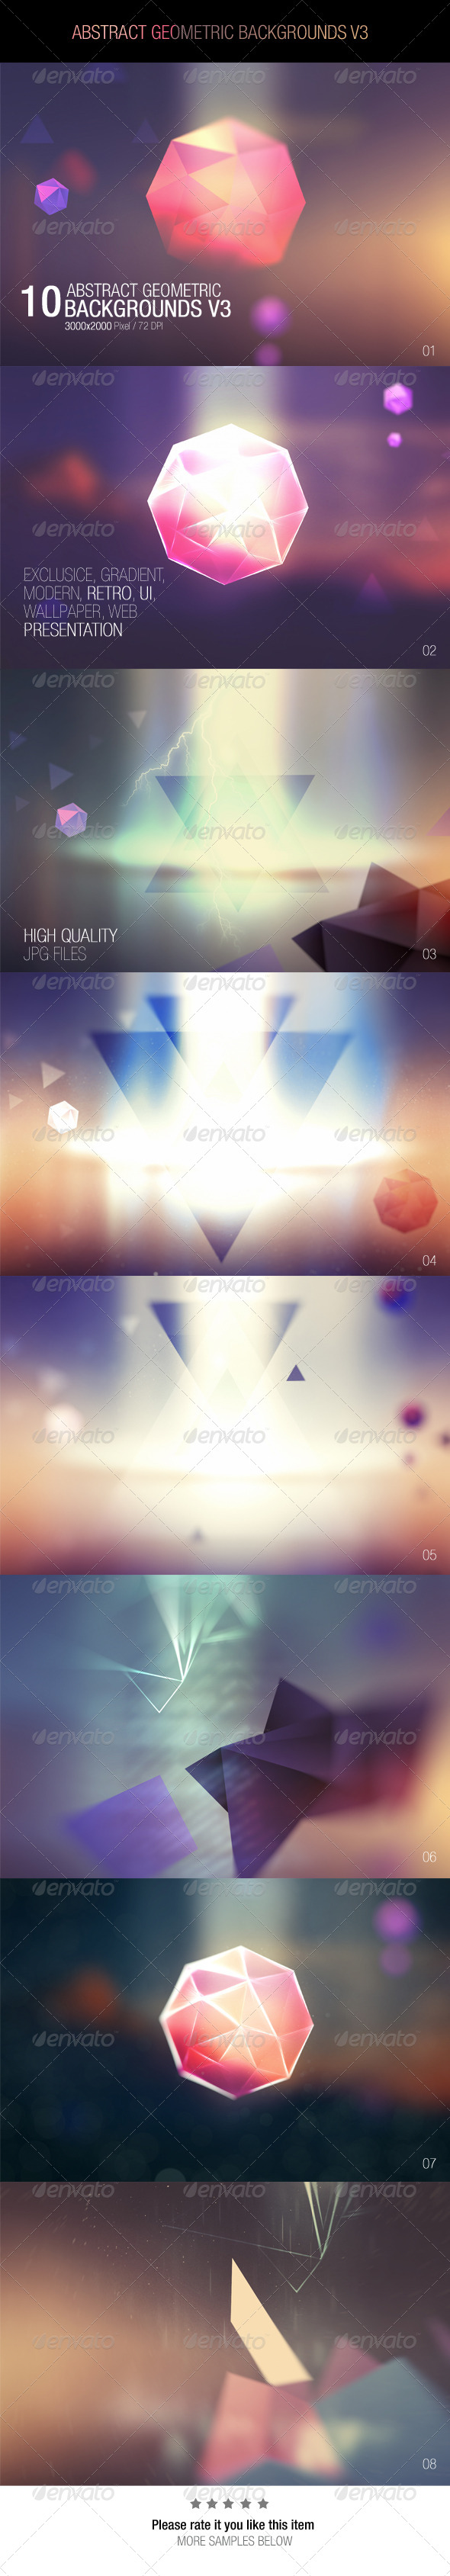 GraphicRiver Abstract Geometric Backgrounds V3 7710031